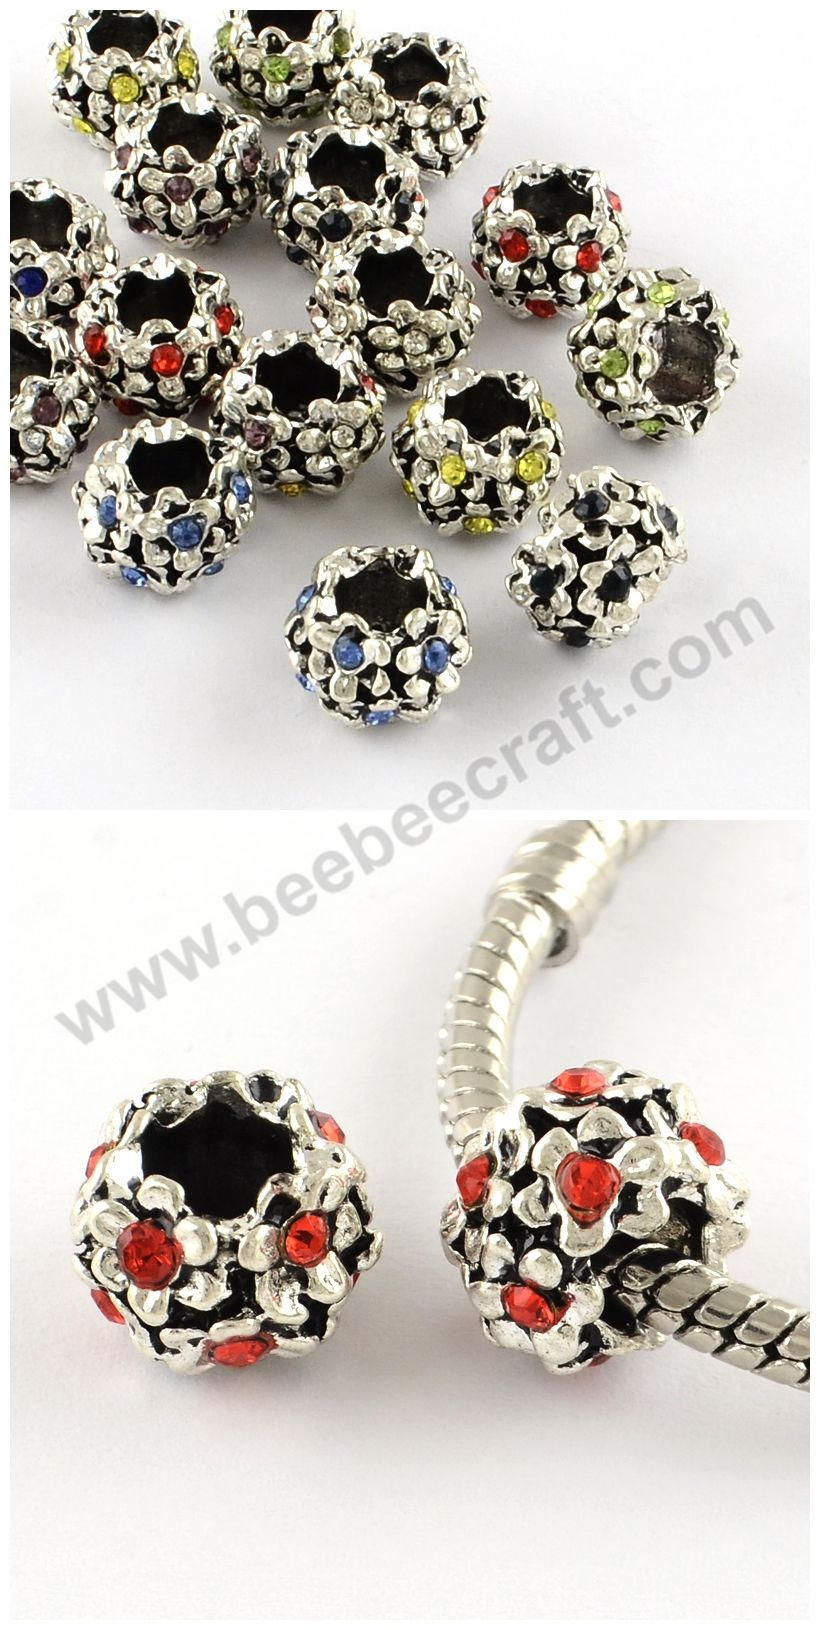 50p 6mm Color Czech Crystal Rhinestone Silver Rondelle Spacer Beads Beaded Craft